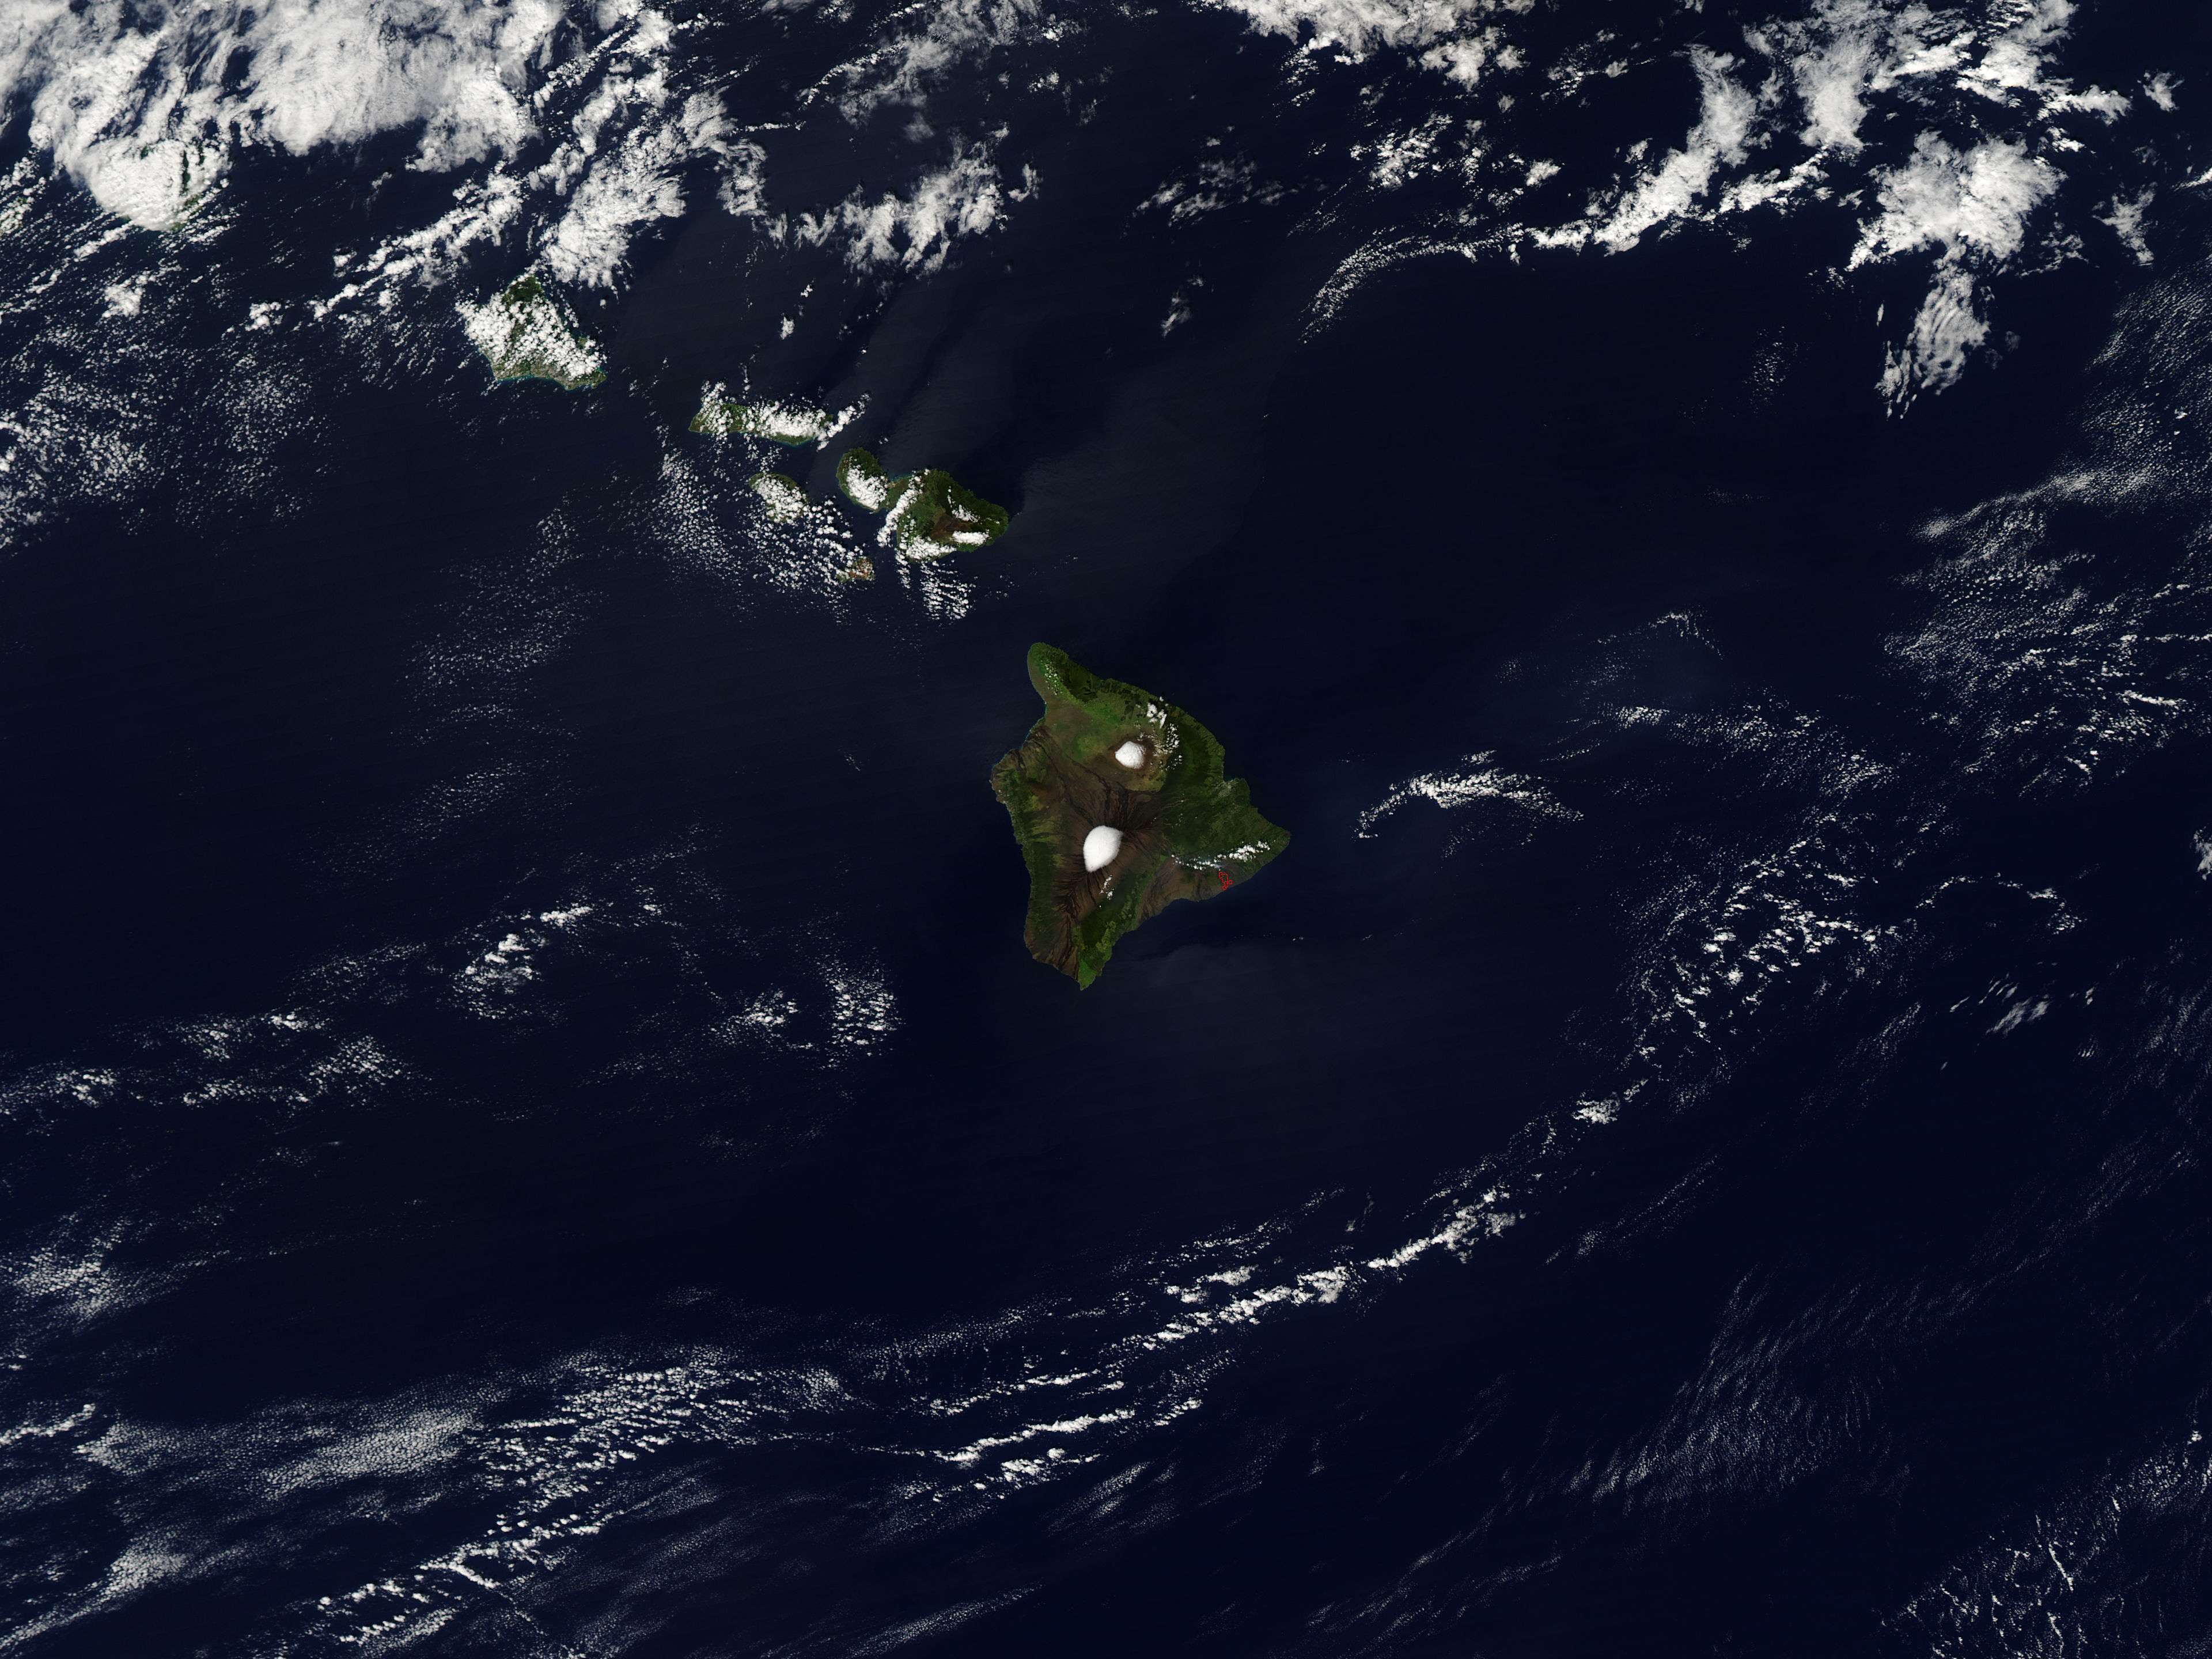 hawaii nasa spacecraft - photo #13